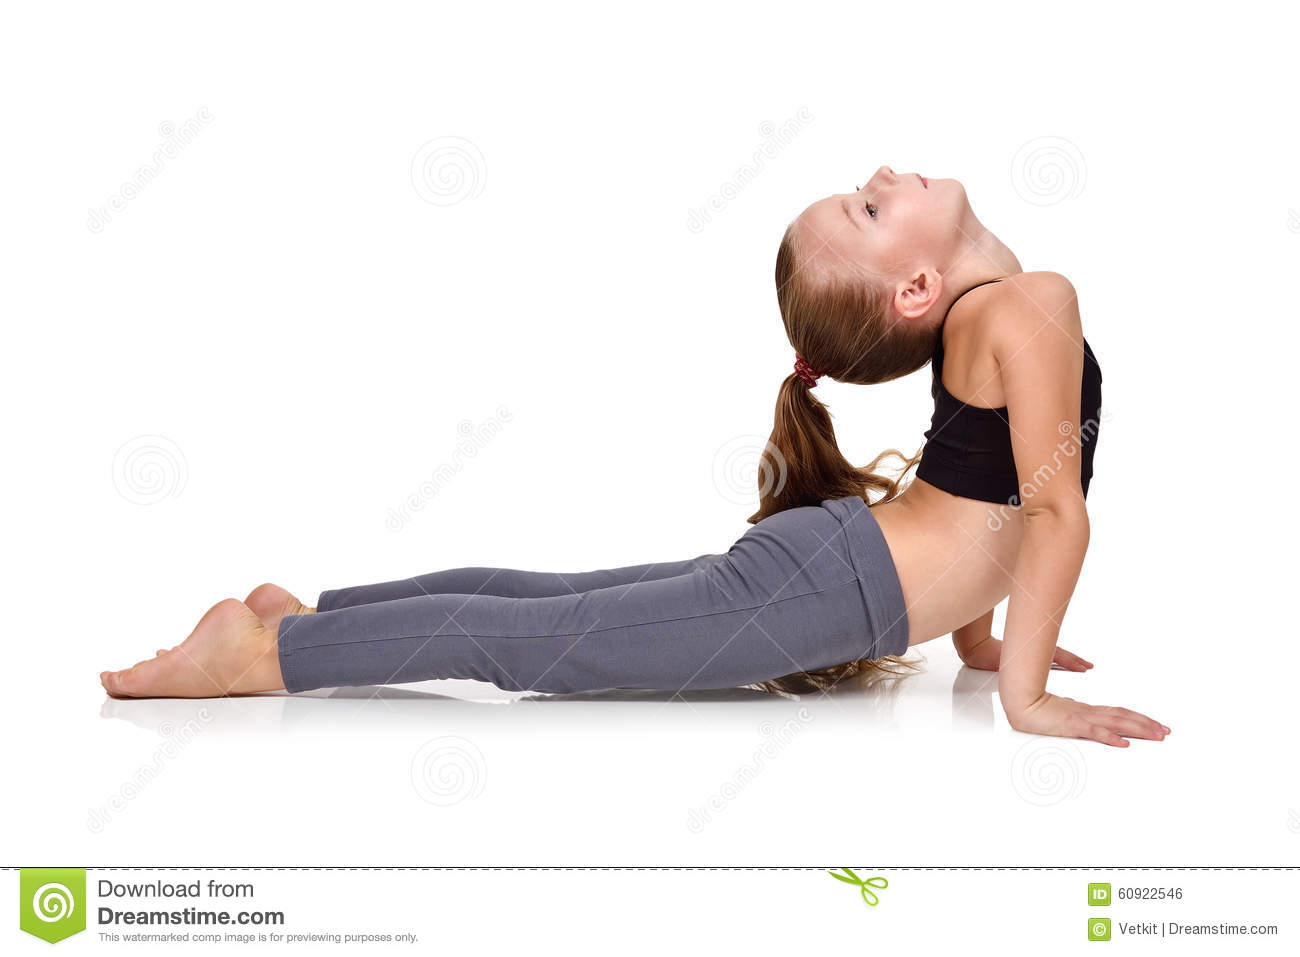 For the lttle girls doing yoga have removed